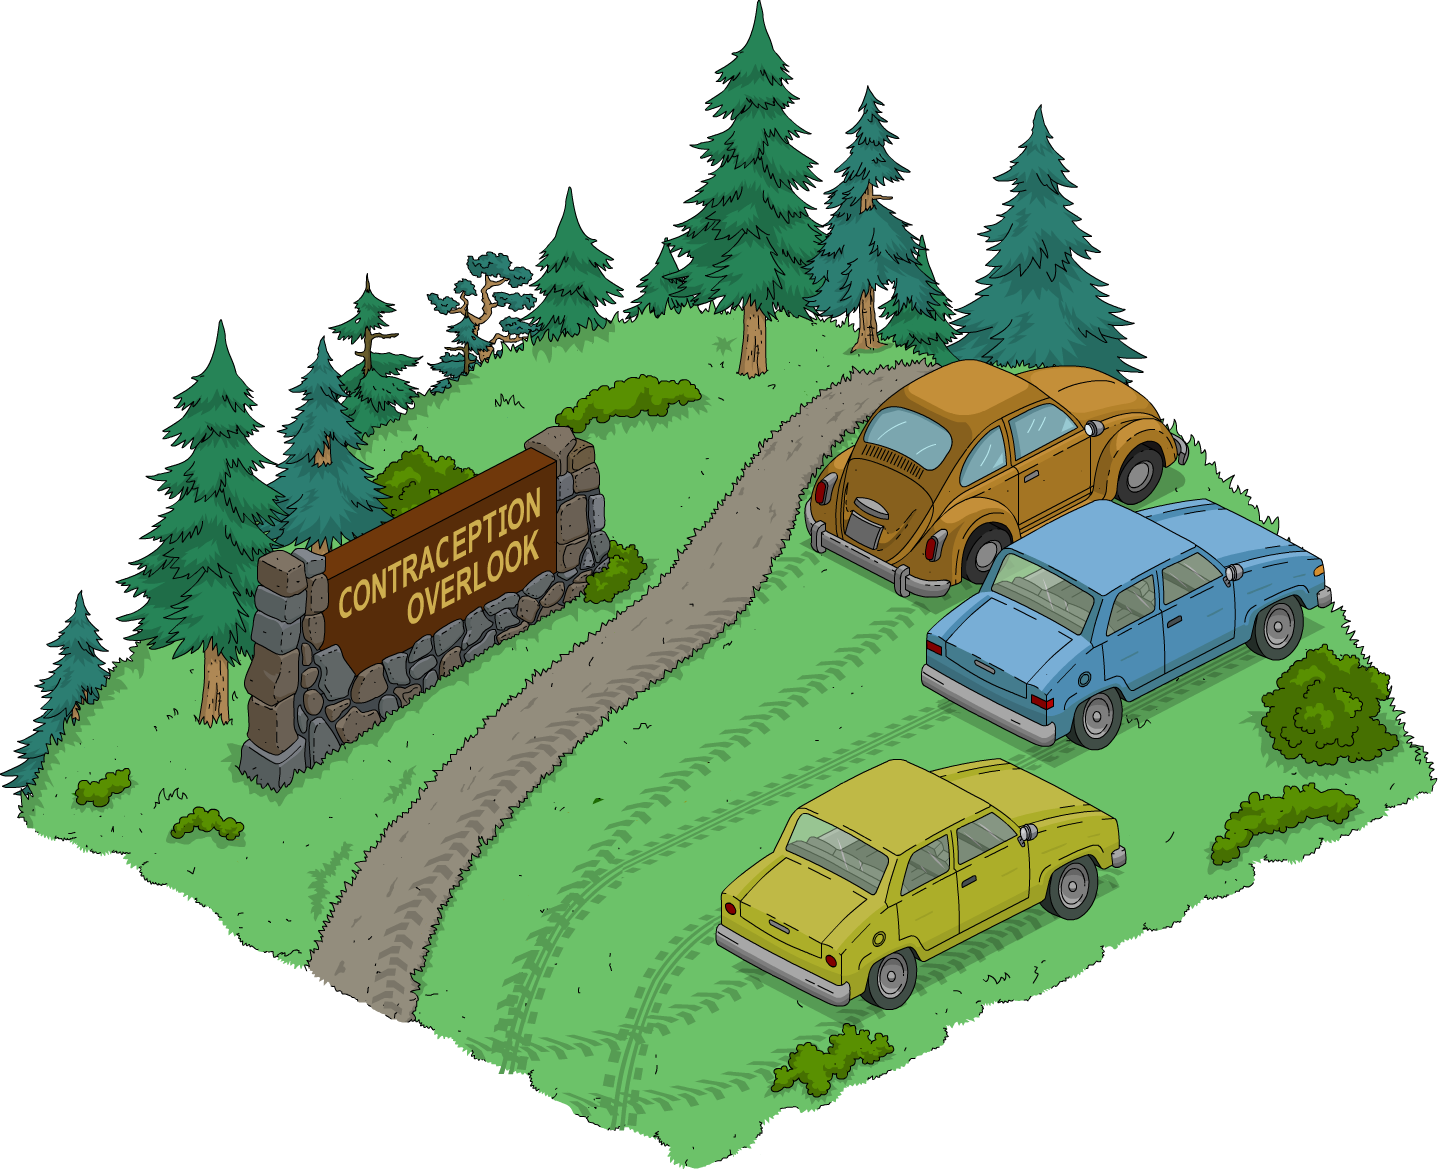 TSTO Contraception Overlook.png